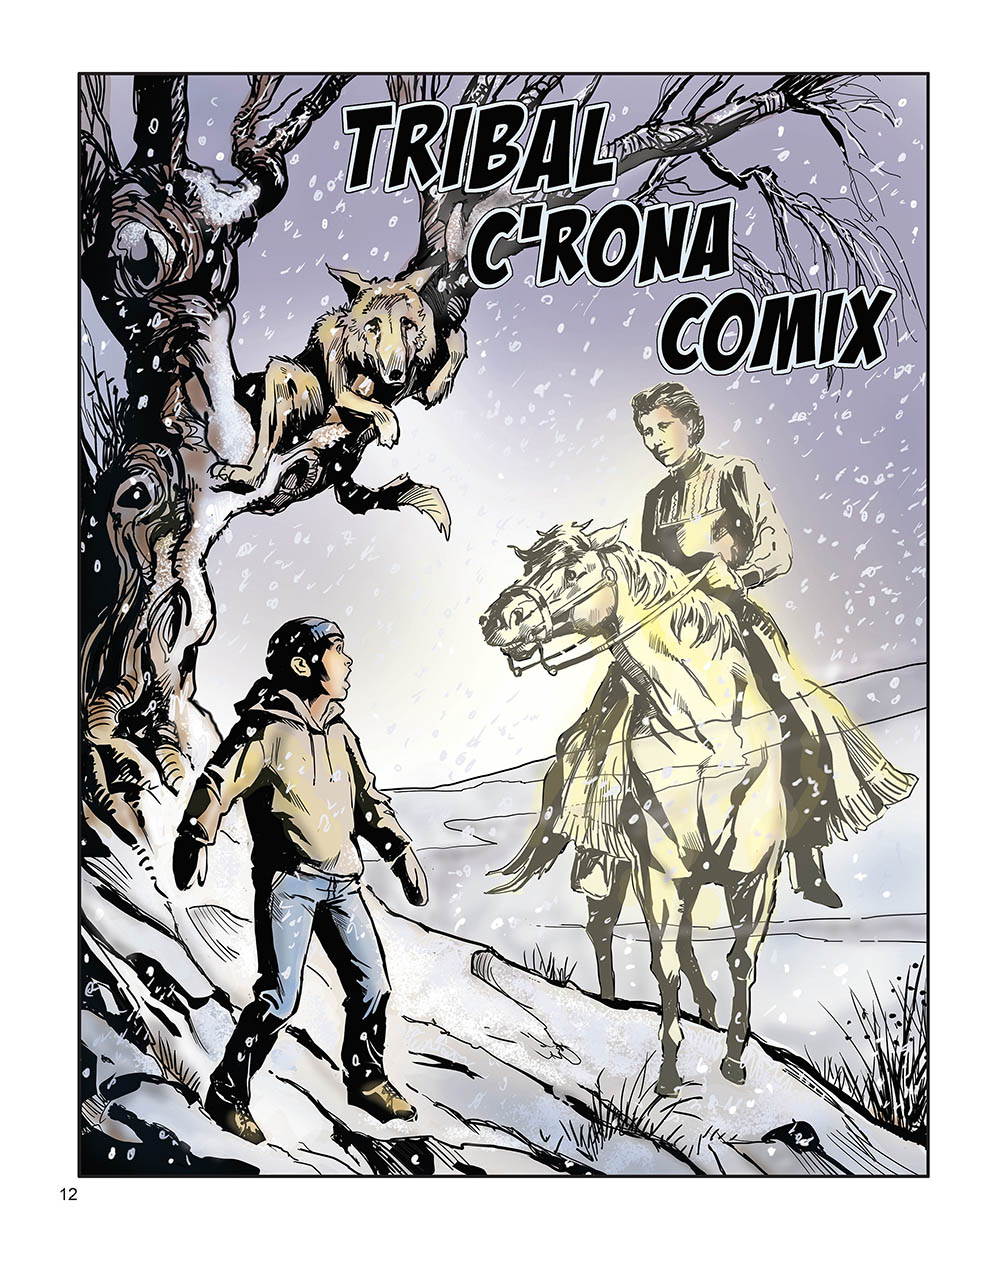 Color illustration depicts a young protagonist in a sweatshirt and jeans being approached by the ghost of Susan La Flesche Picotte, who is riding a horse. The ghost and the ghost horse are see-through. Behind the protagonist and the ghost, a wolf cowers in a tree branch. There is snow on the ground, and the tree has no leaves.